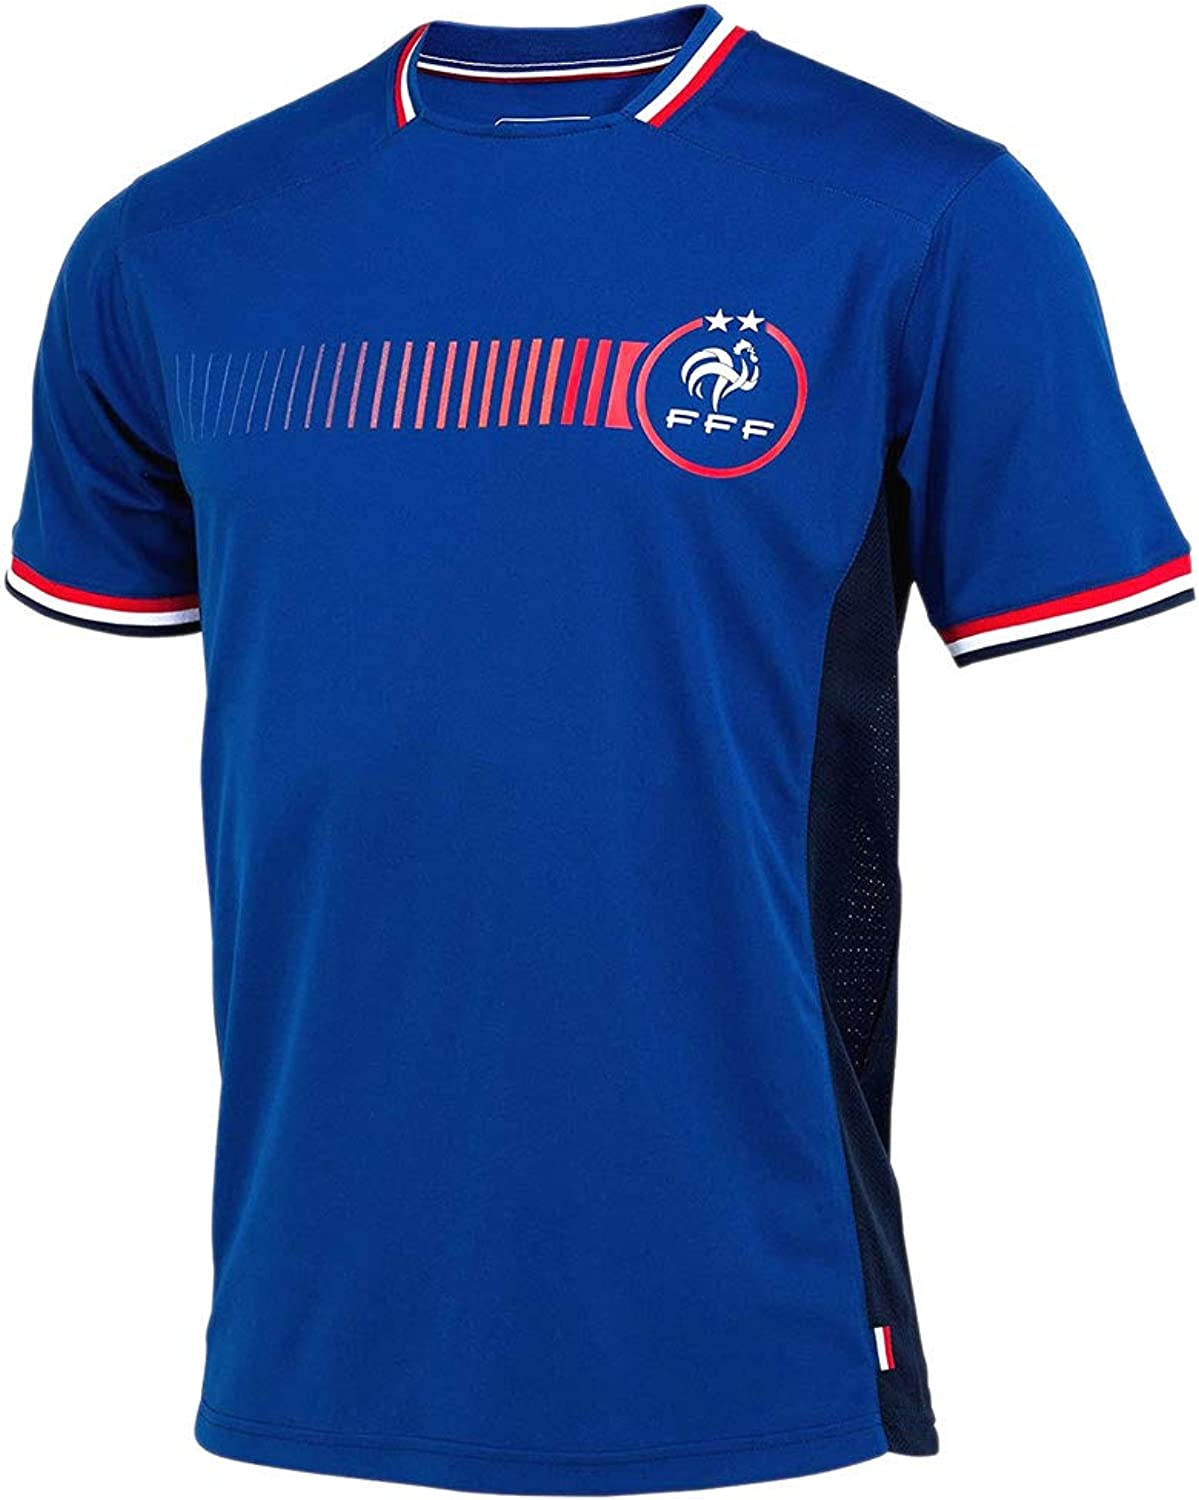 FFF  French Football Team 2 Stars Men's Soccer Jersey  bluee